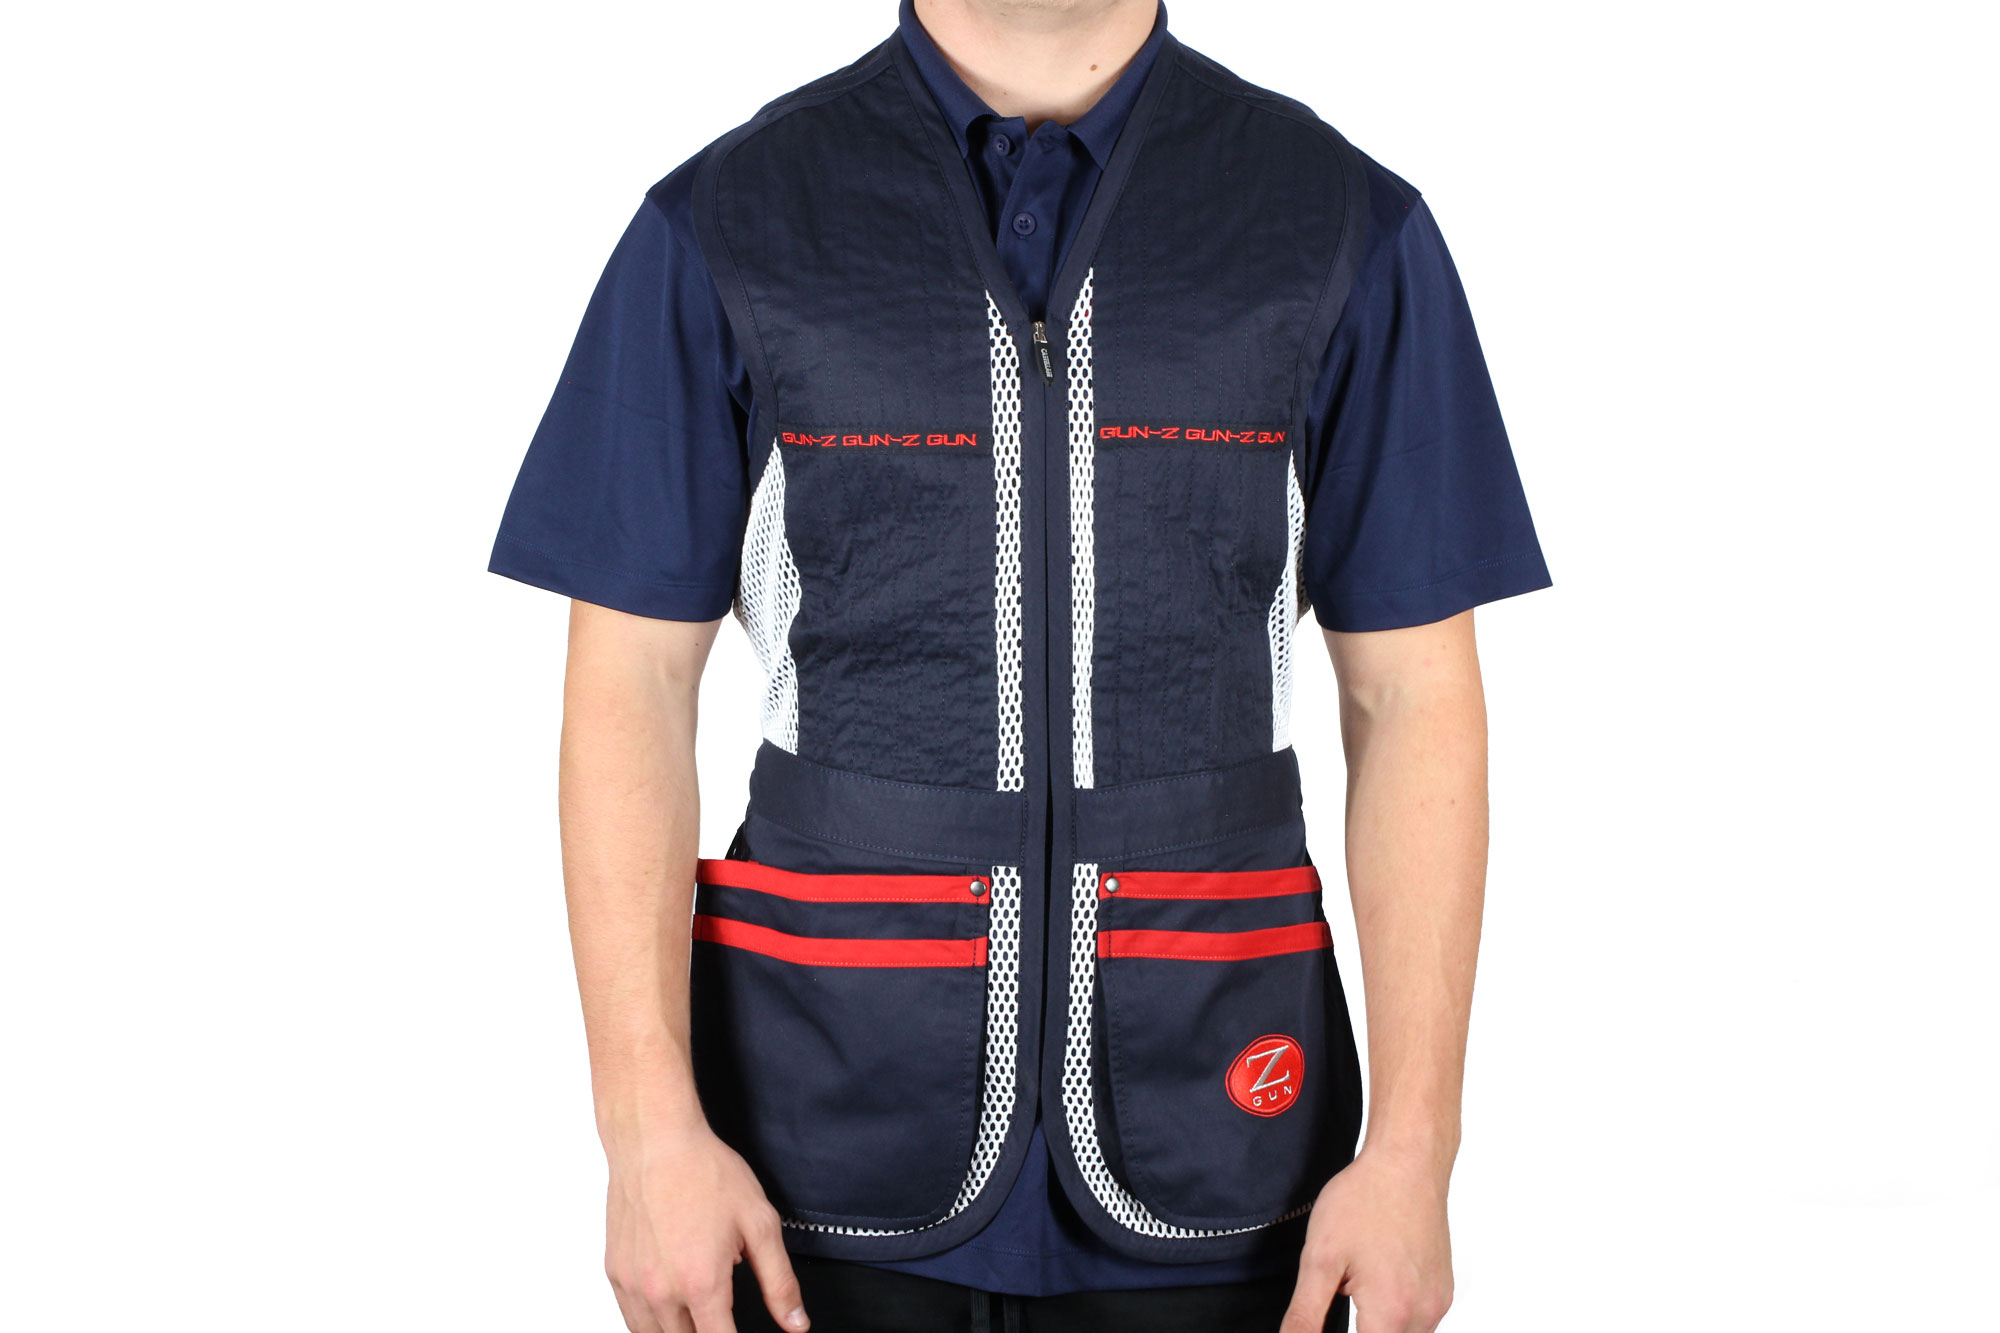 Zoli Shooters Vest By Castellani